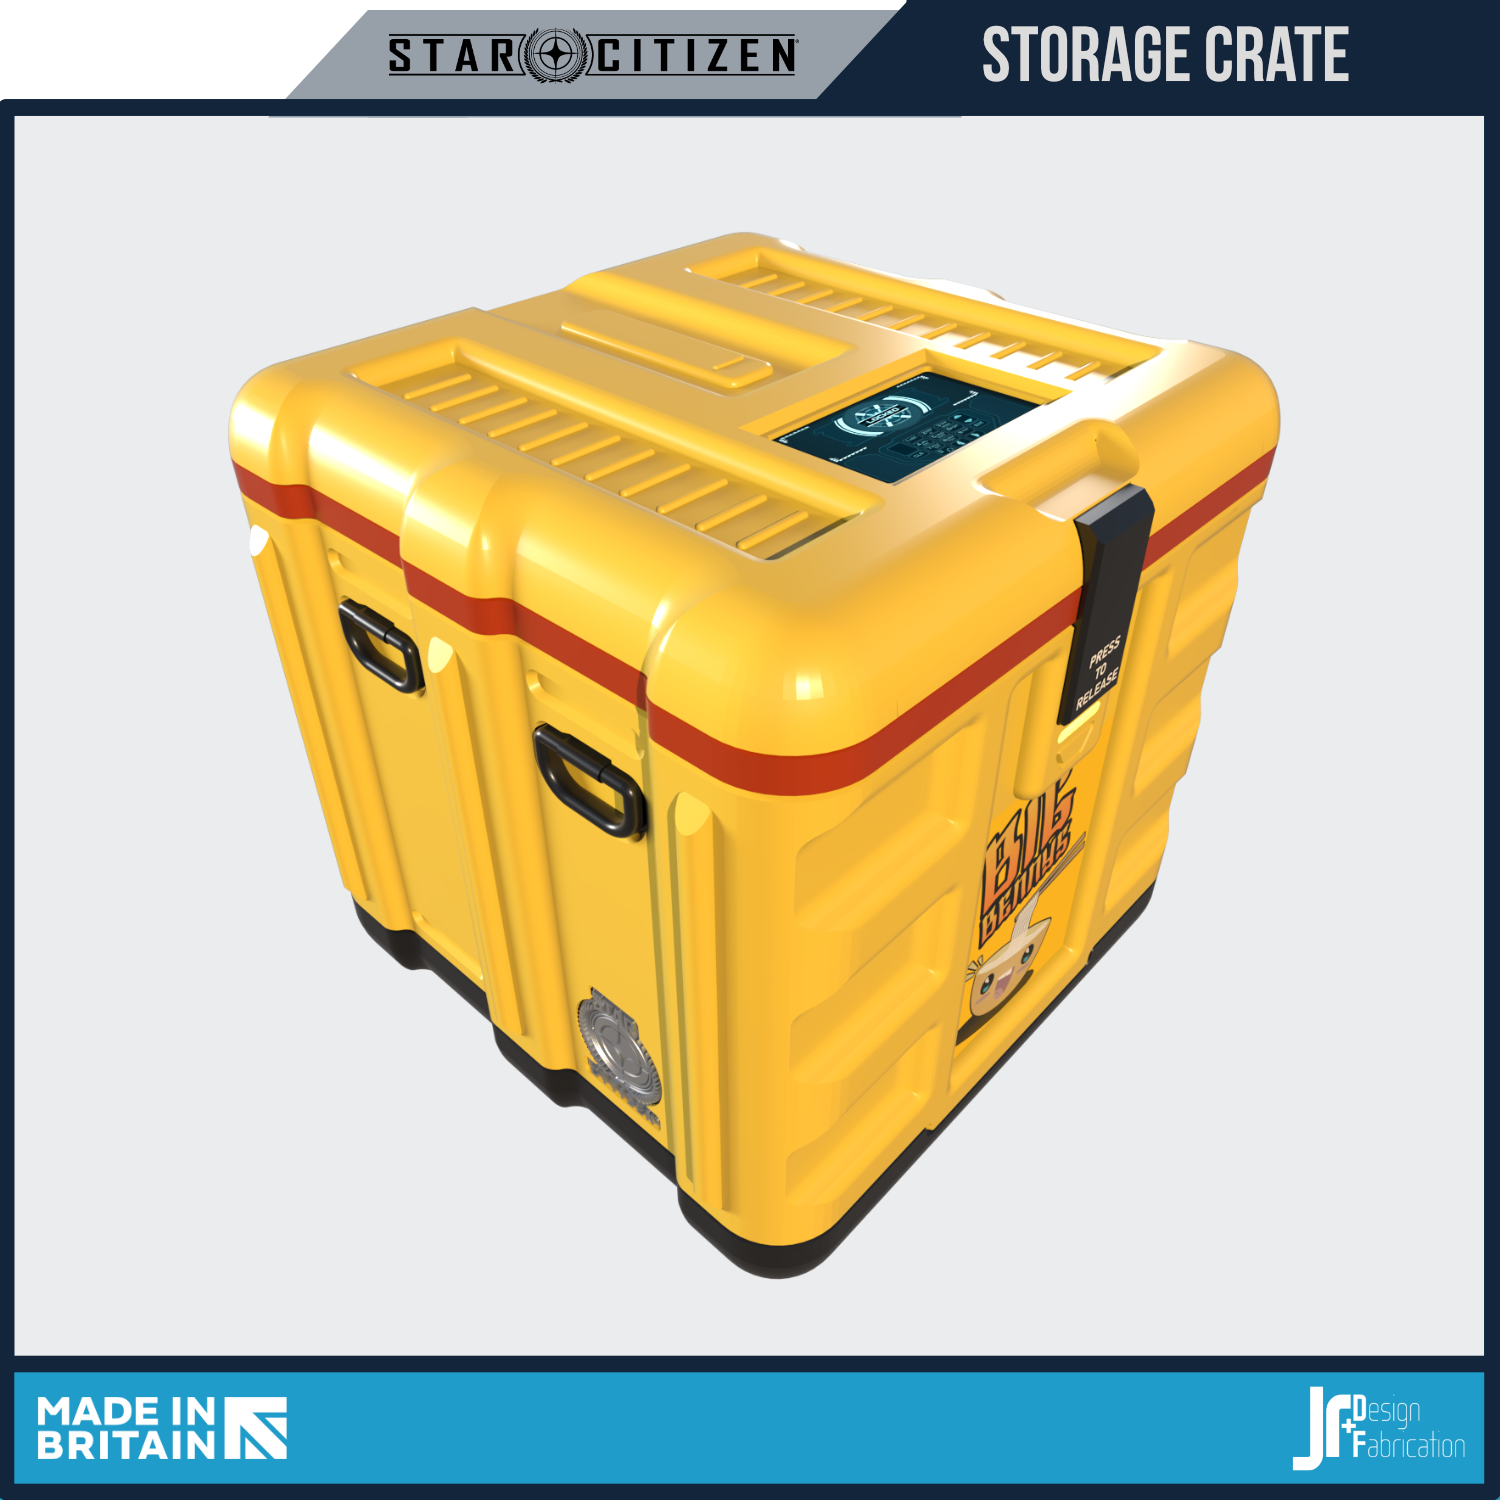 Storage crate image 02.png